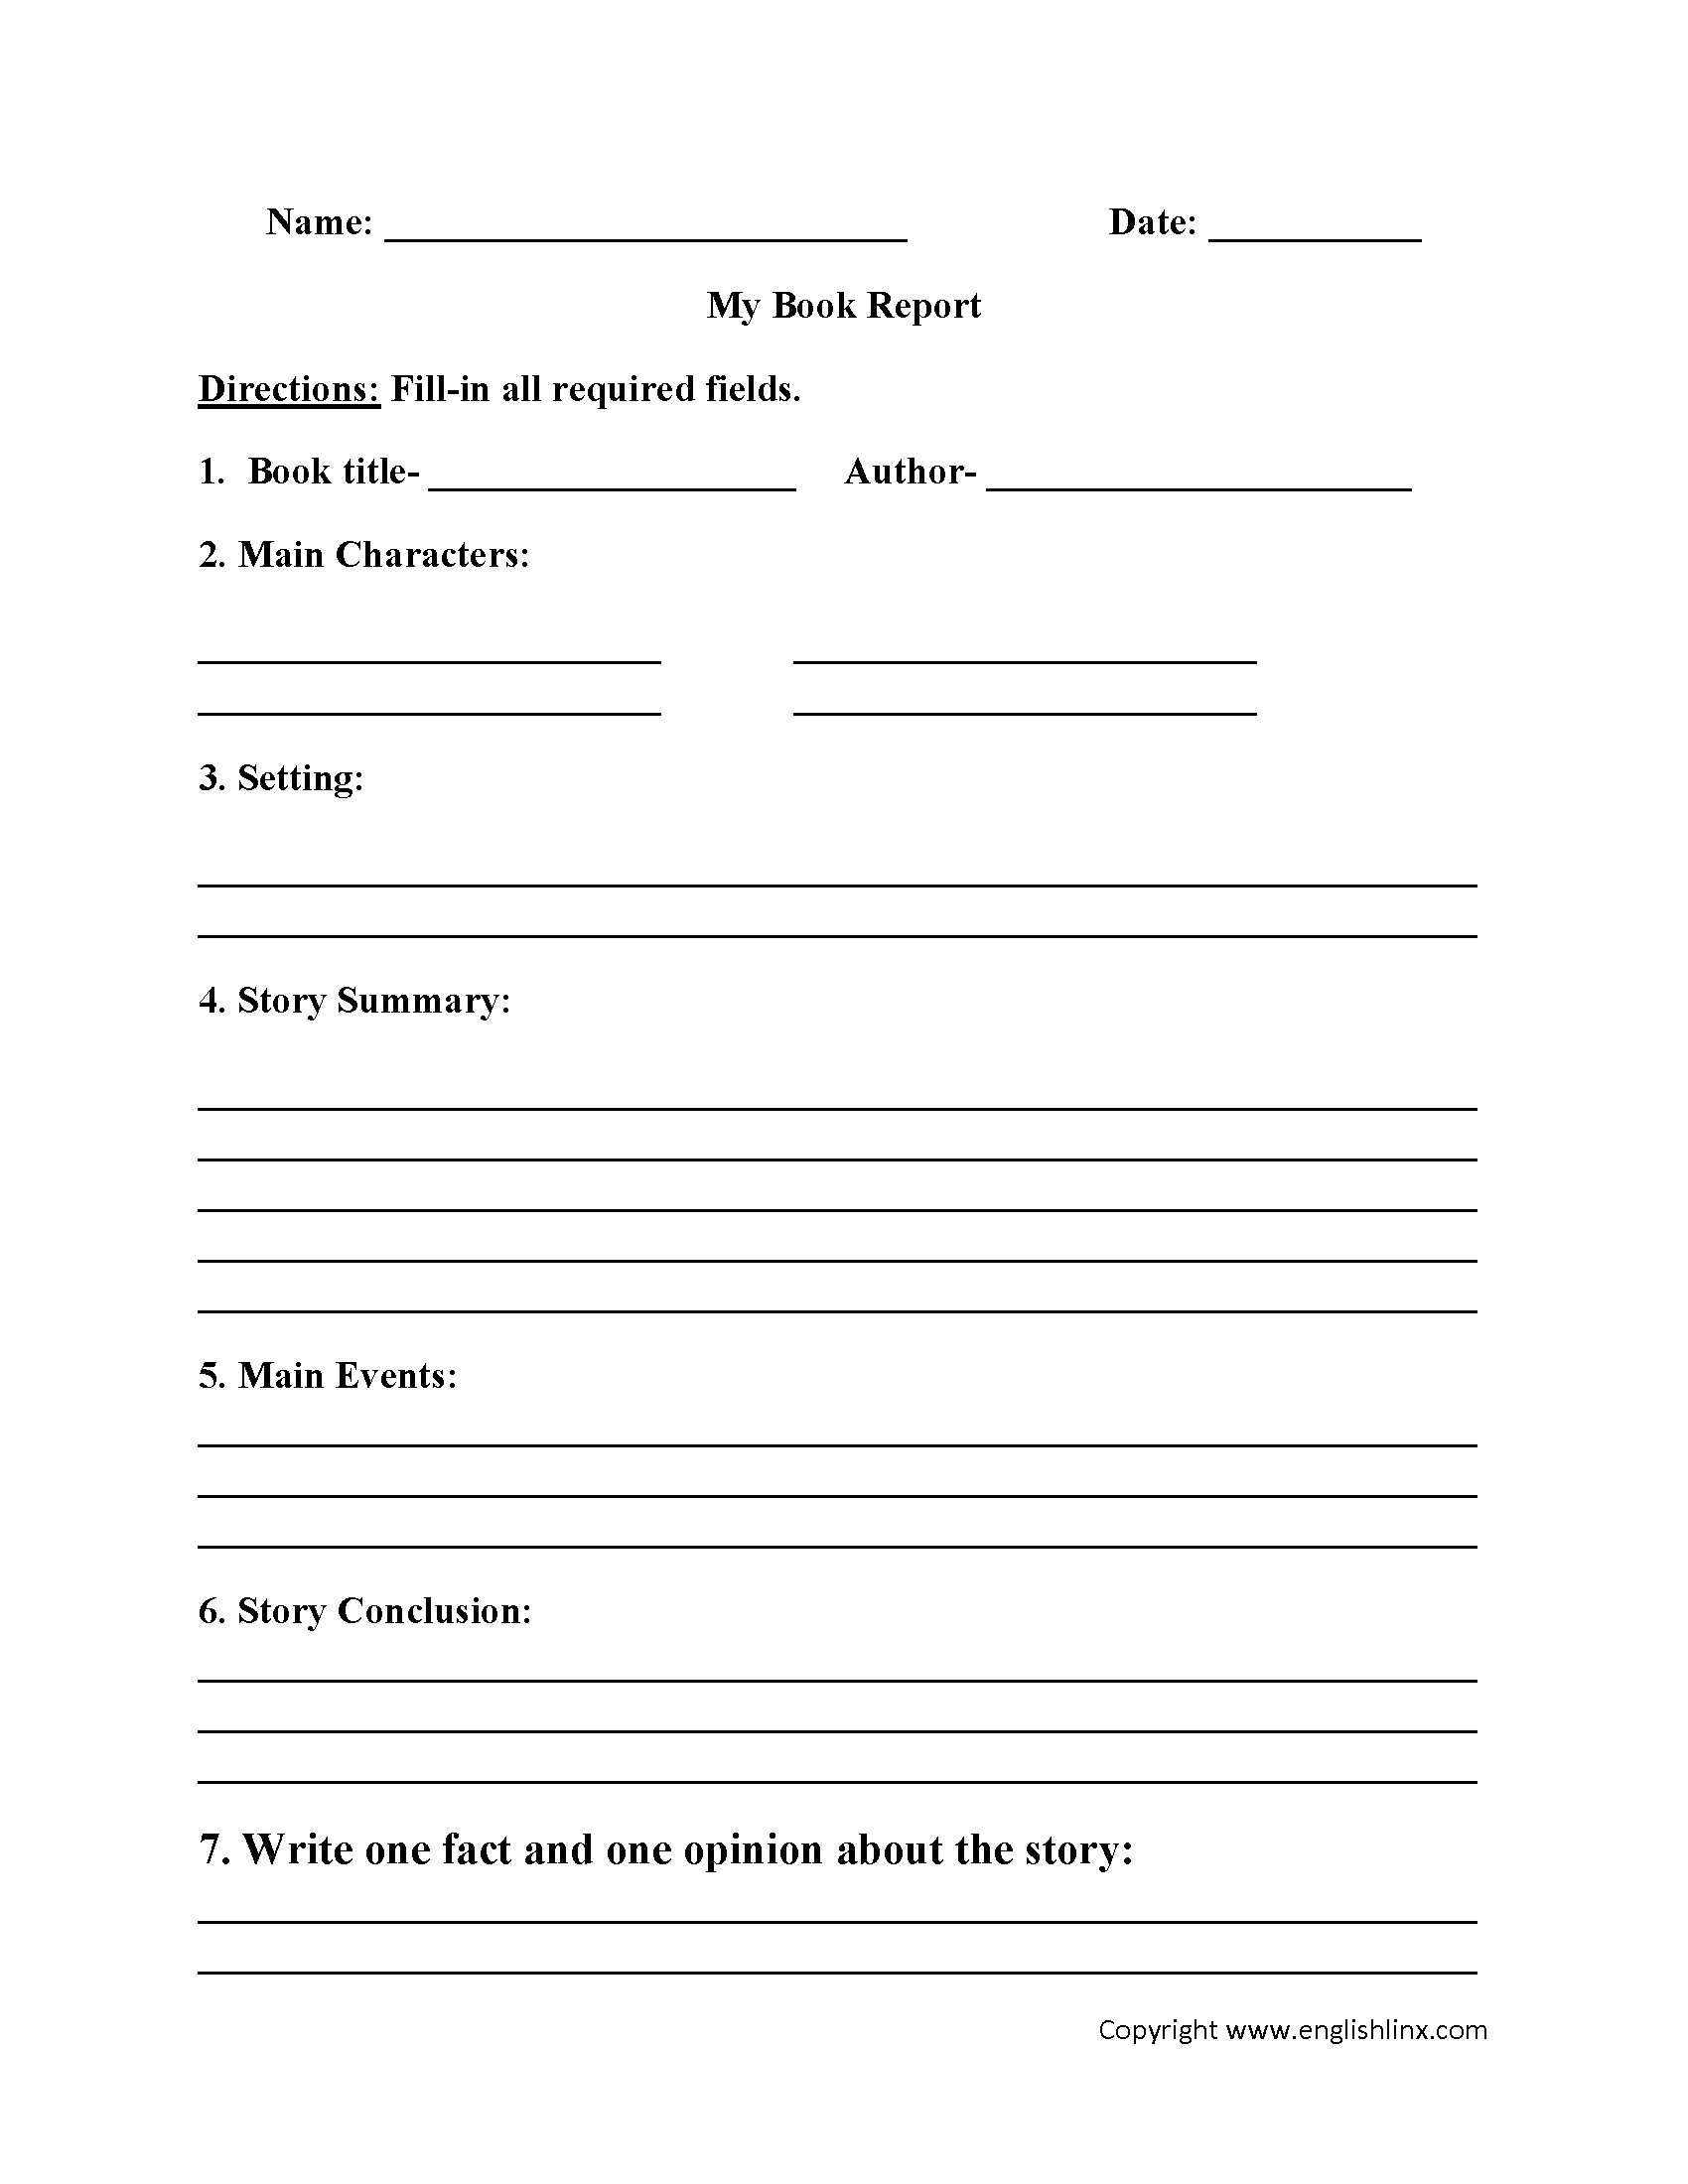 My Book Report Worksheet | Book Report Templates, Book Throughout Story Report Template